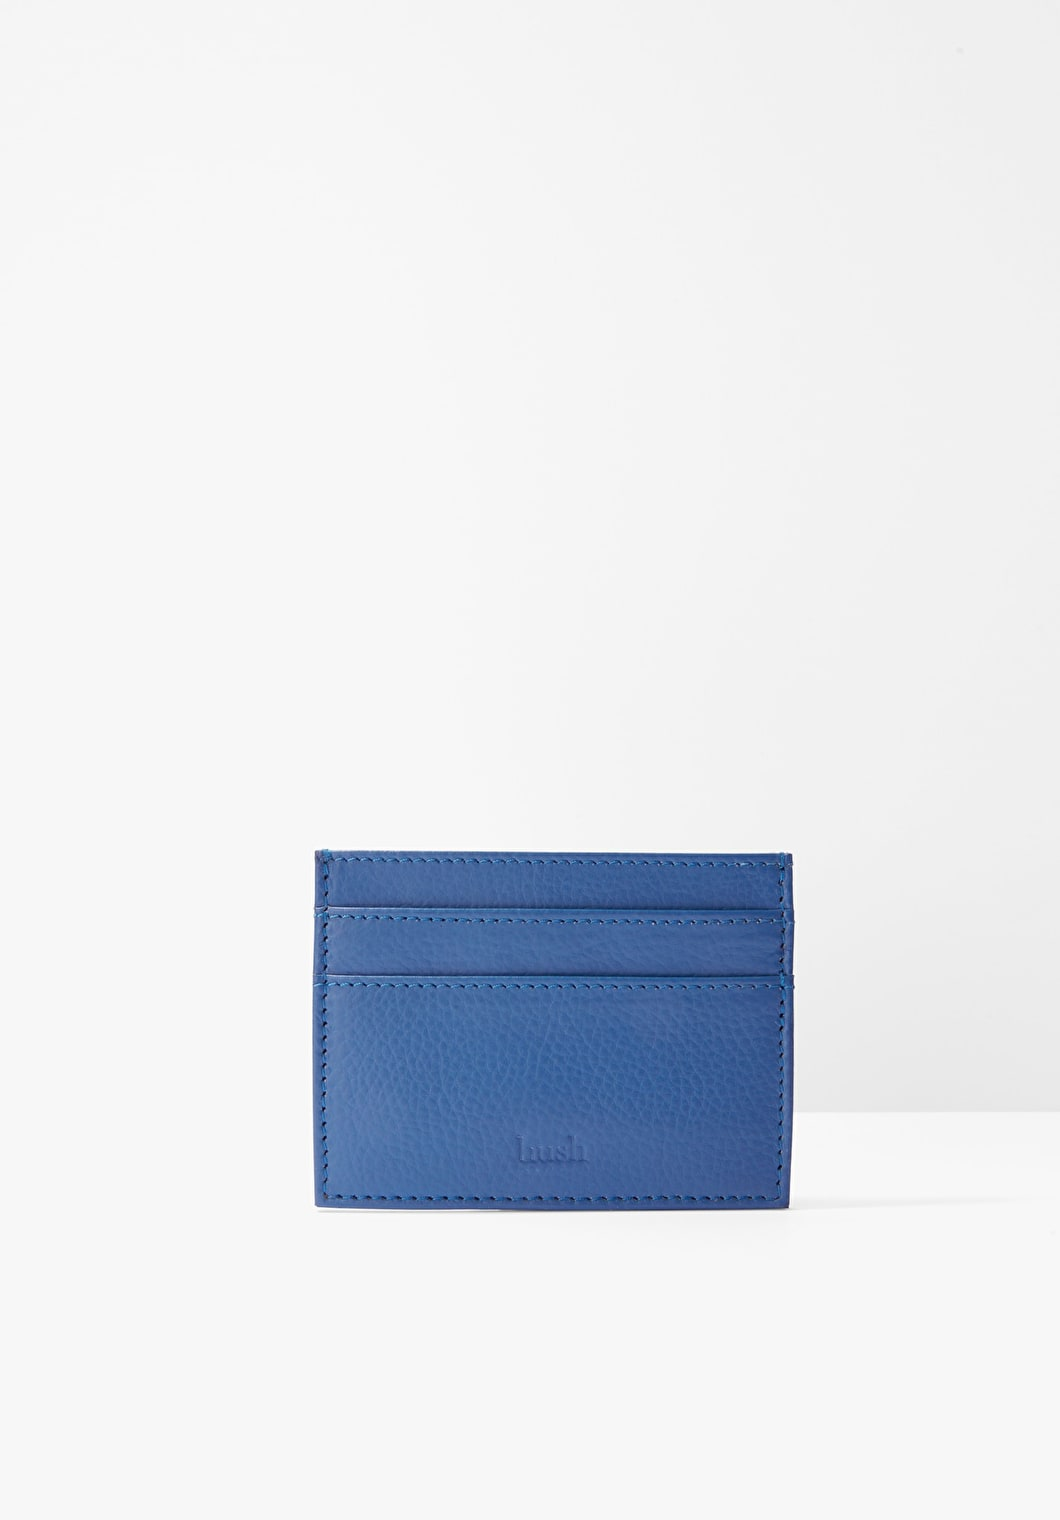 Leather Card Holder | hush